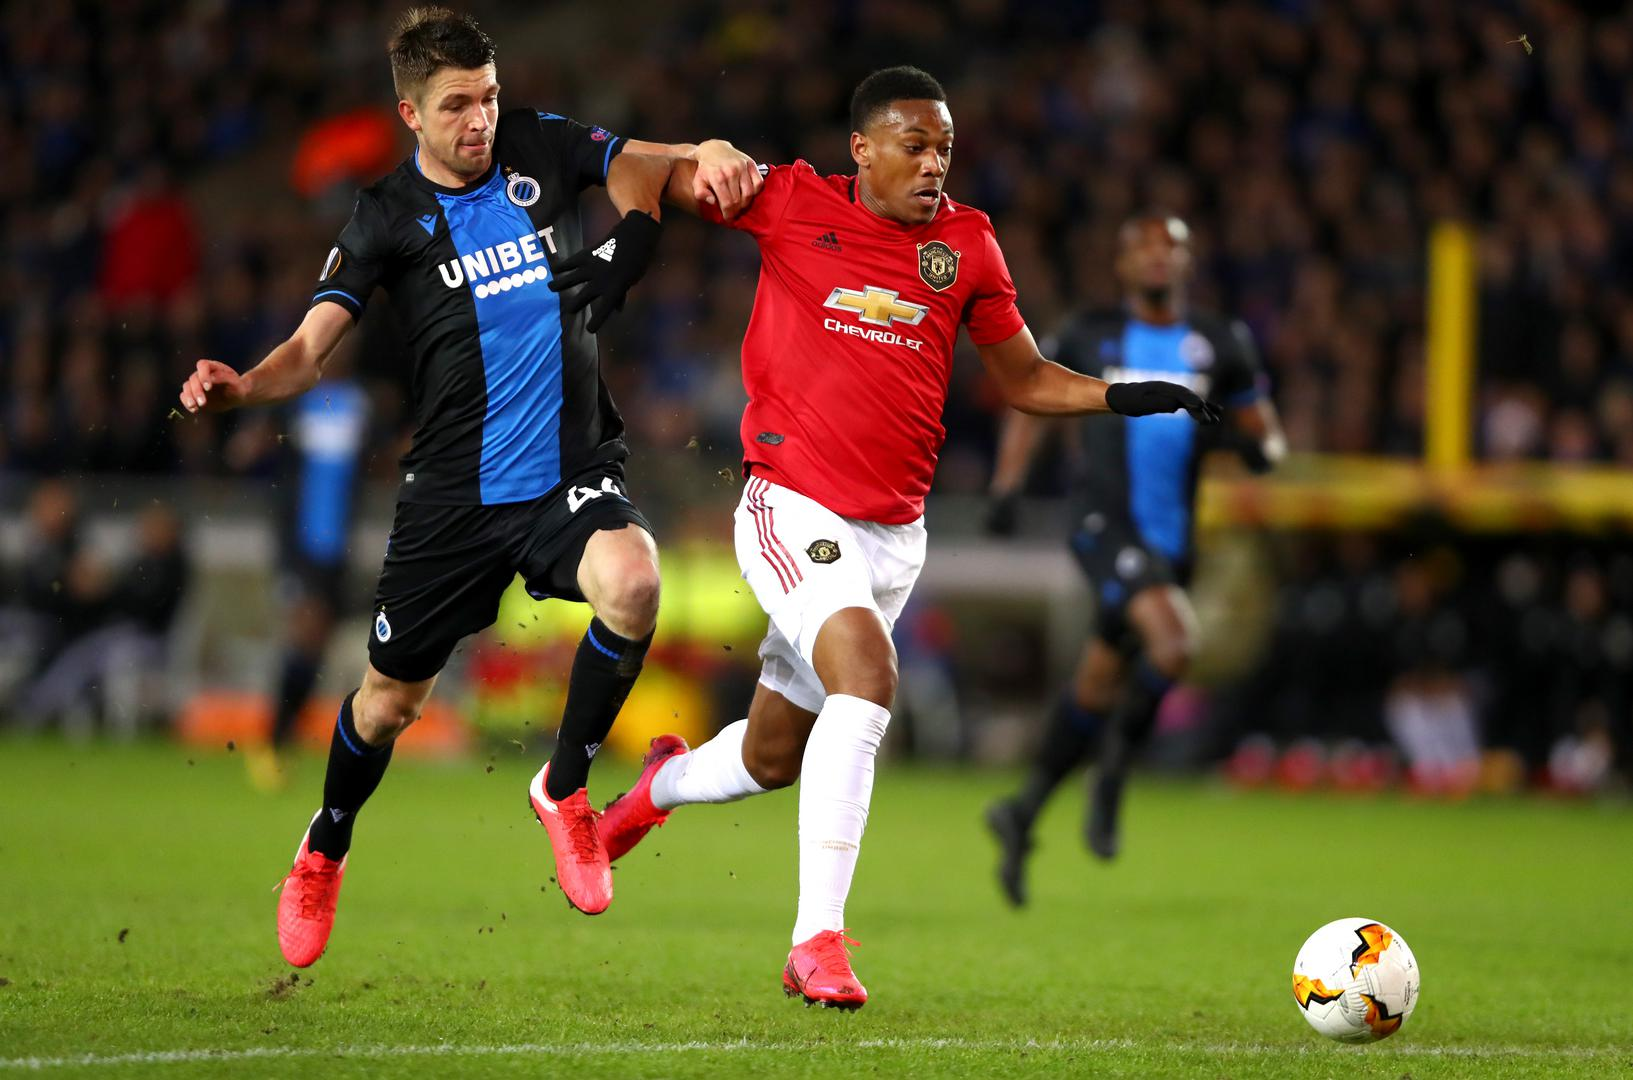 Anthony Martial surges past a Brugge defender to score Manchester United's equaliser in the Europa League